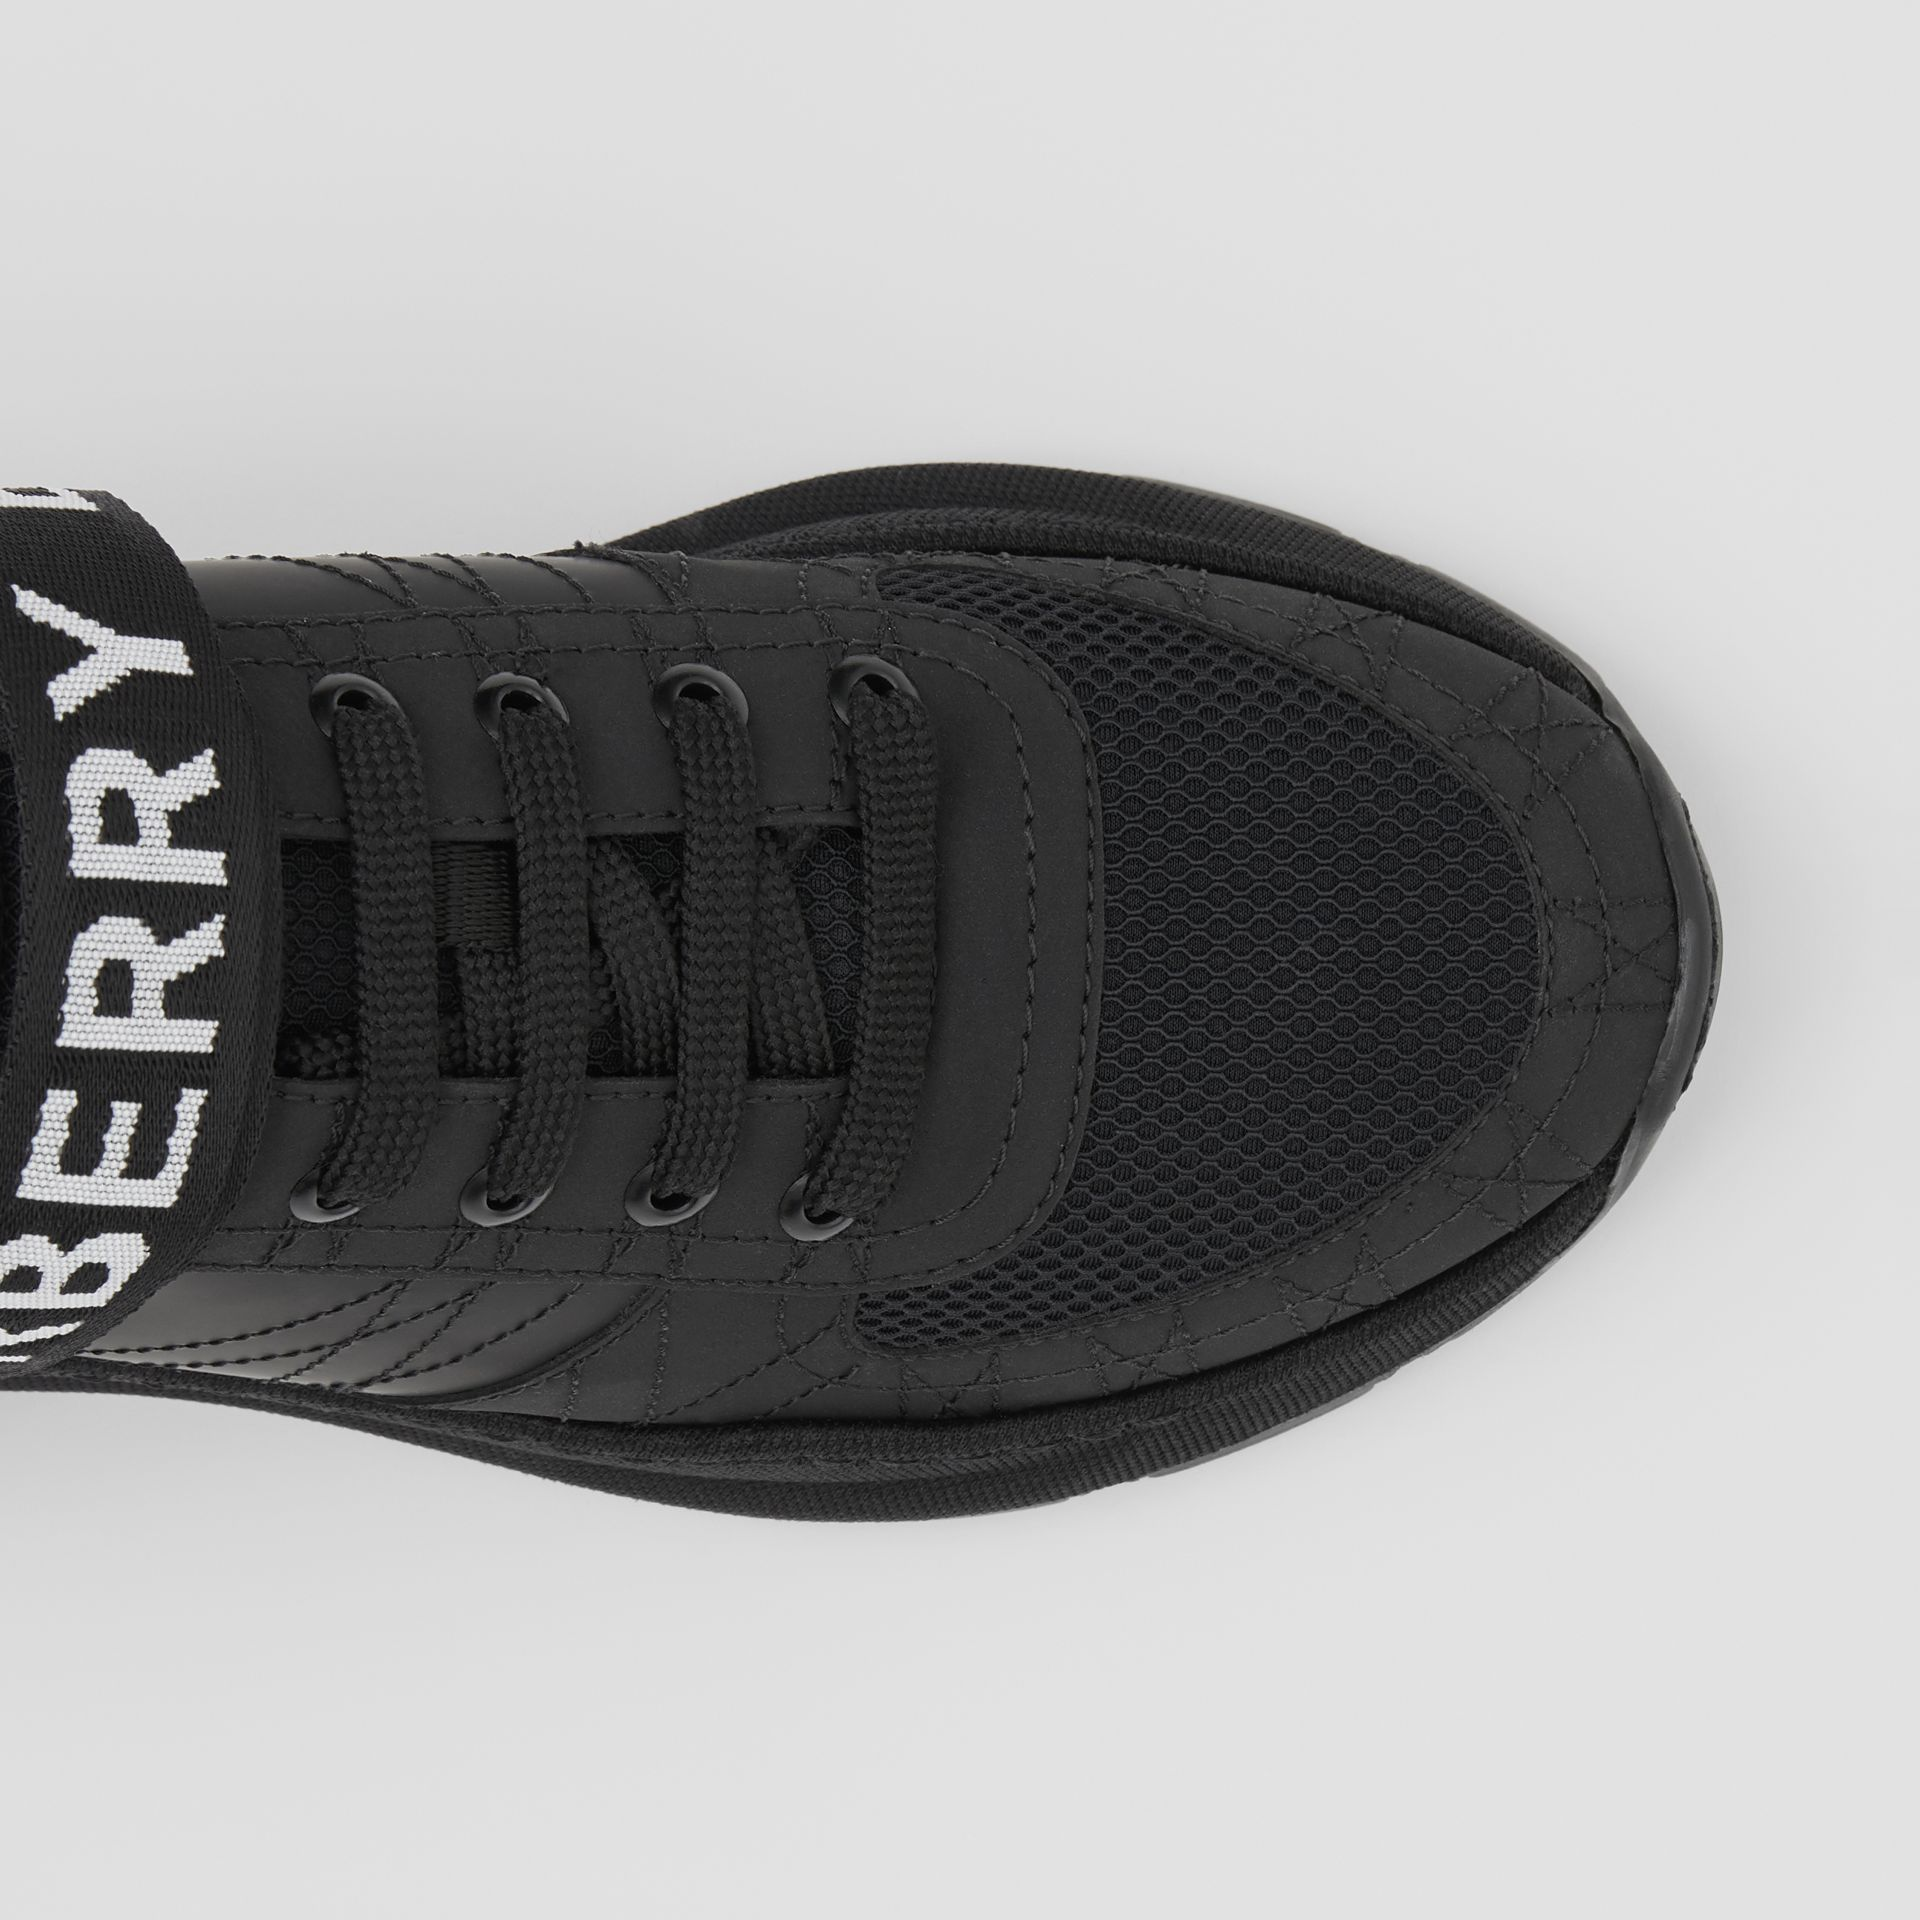 Logo Detail Leather, Nubuck and Mesh Sneakers in Black - Women | Burberry - gallery image 1